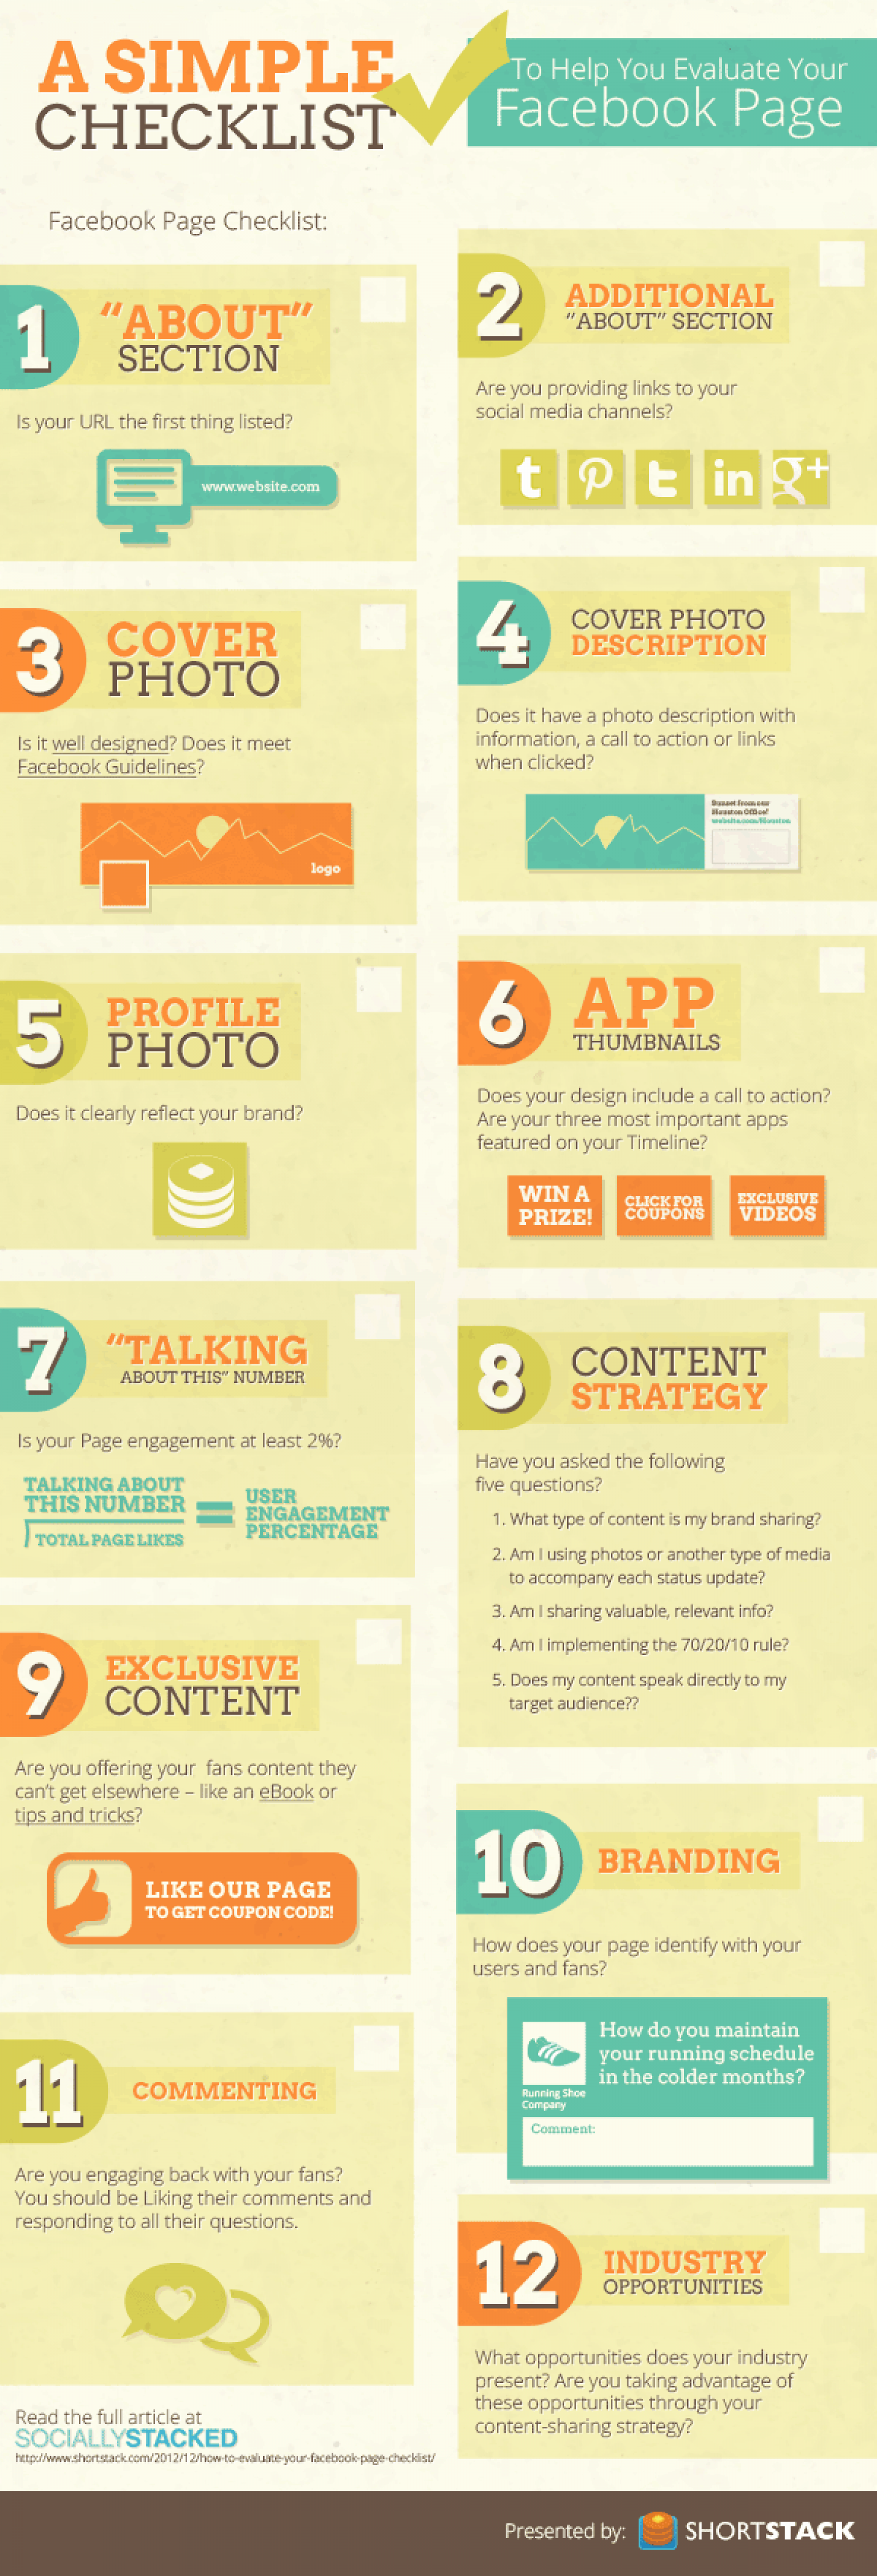 Checklist to help you Evaluate your Facebook Page Infographic